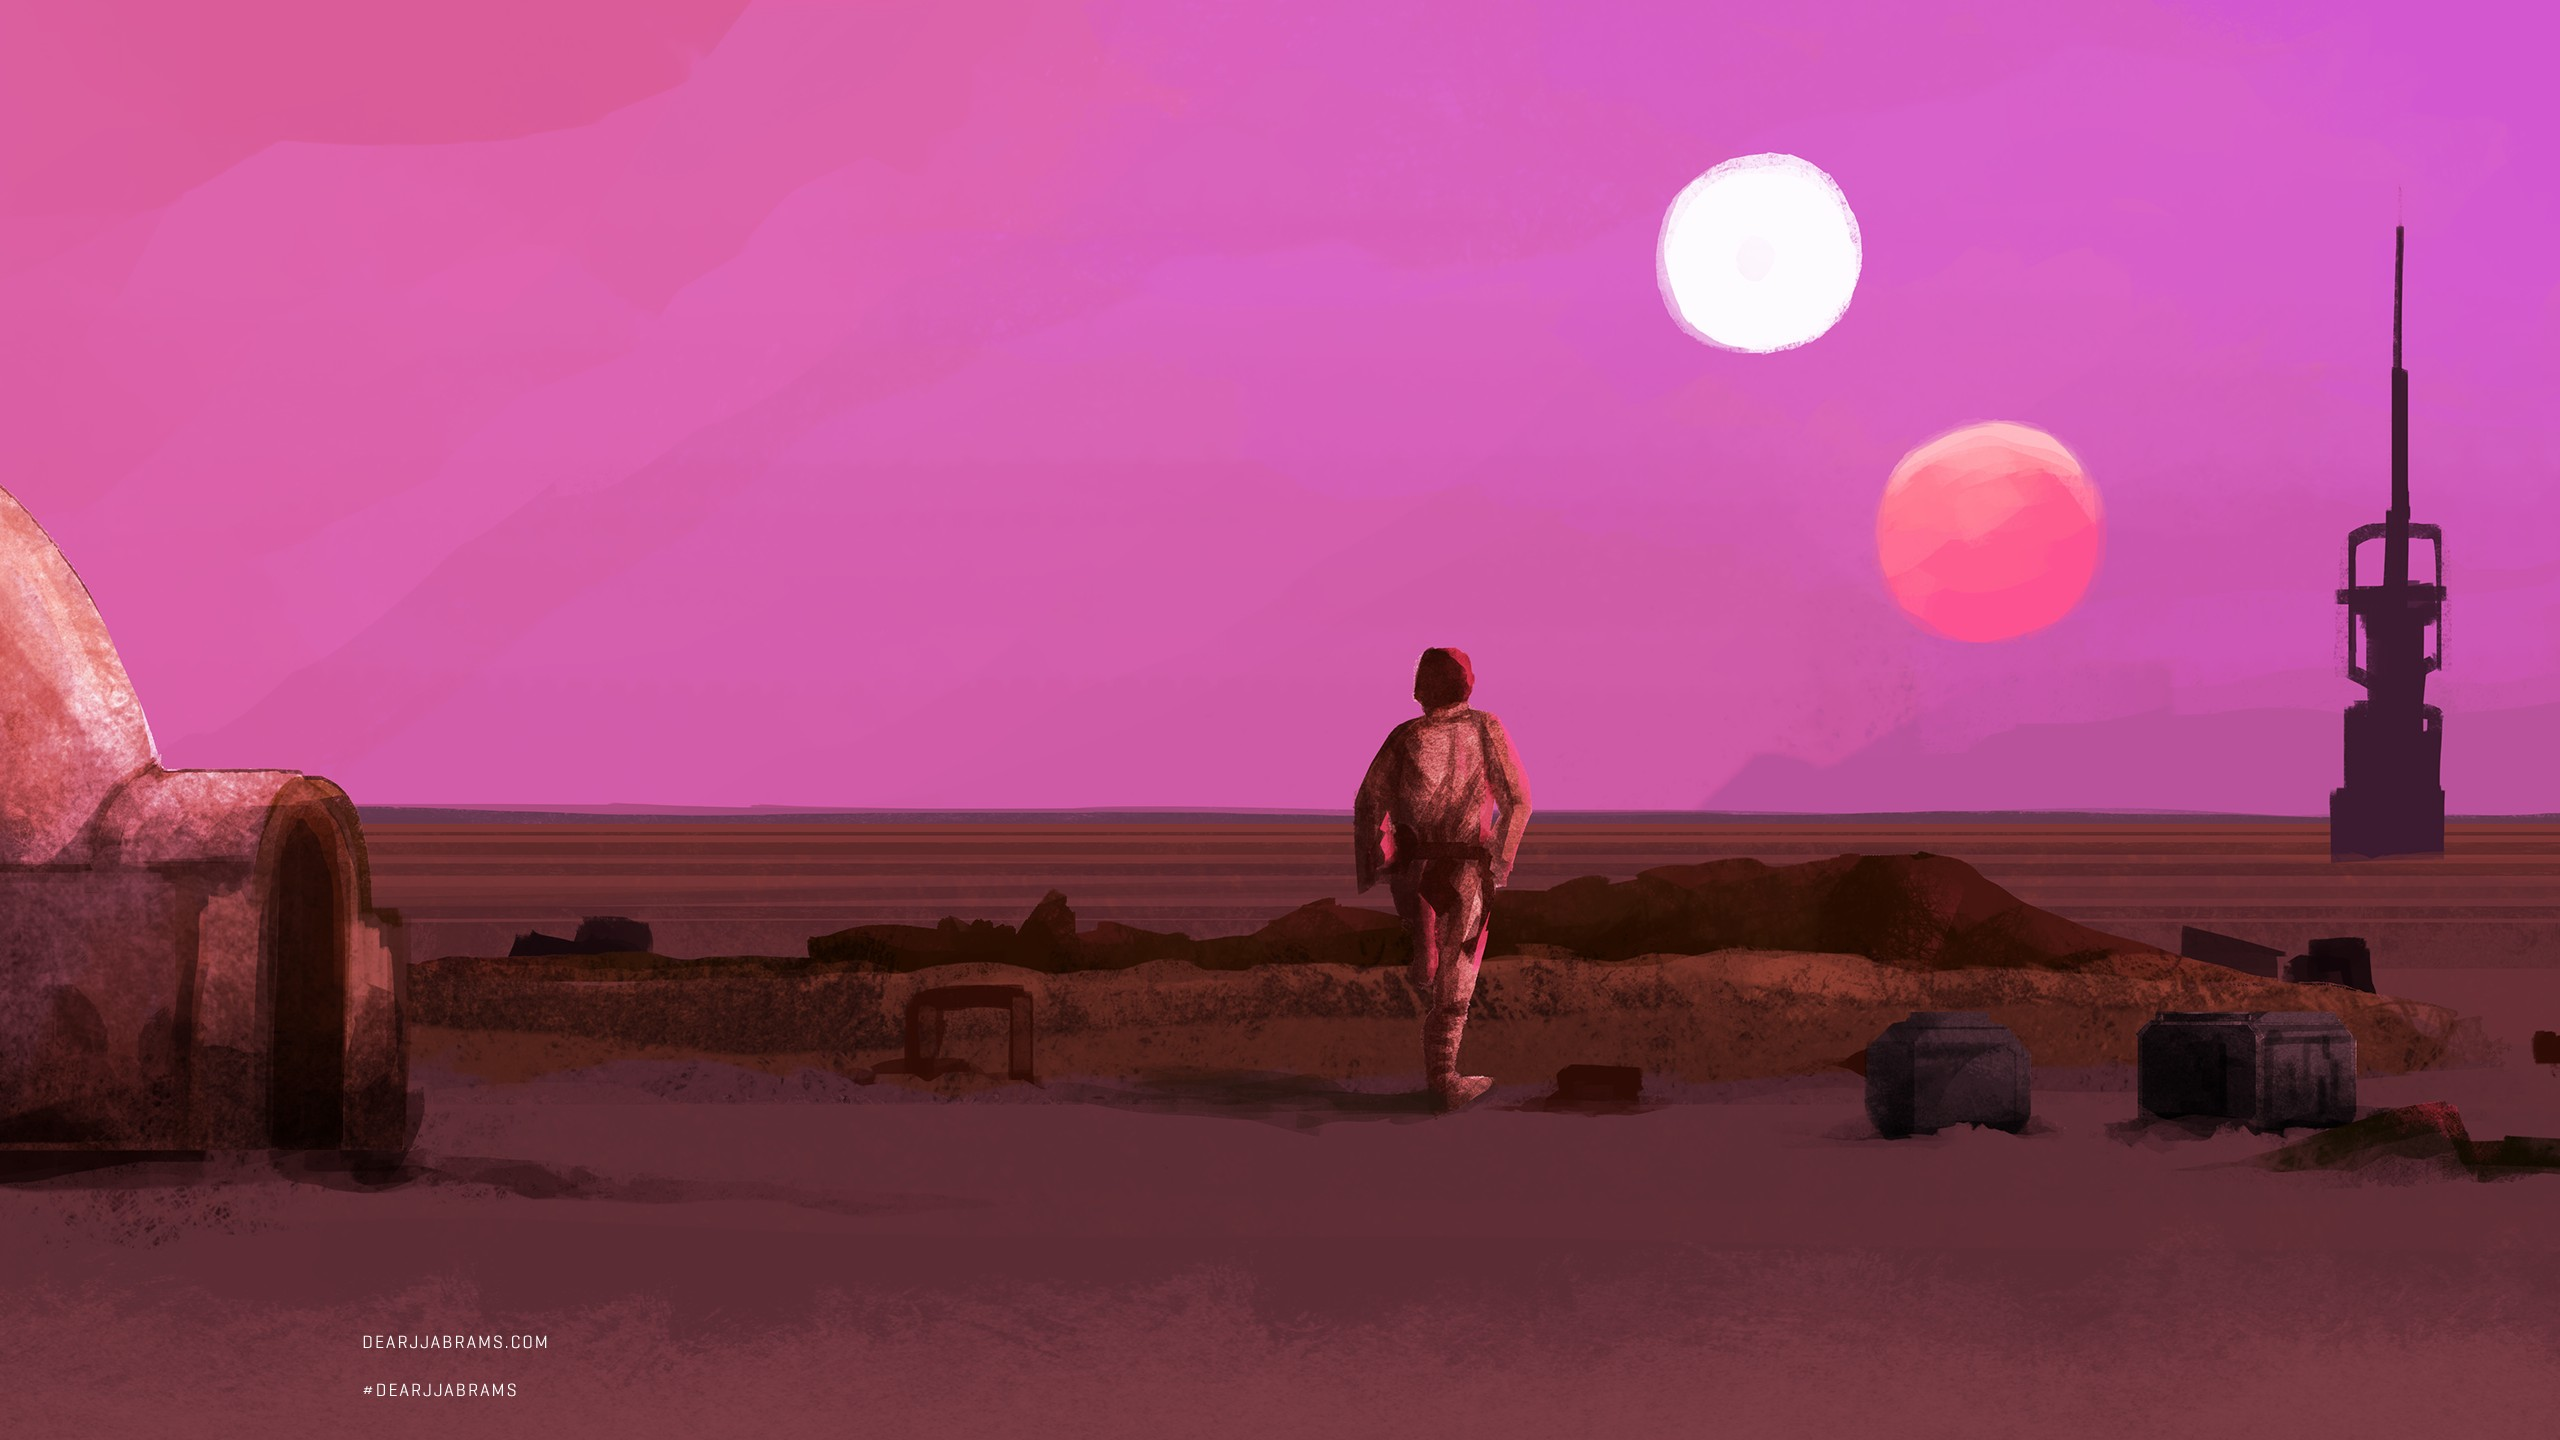 Tatooine Lukes Farm Wallpaper by HD Wallpapers Daily